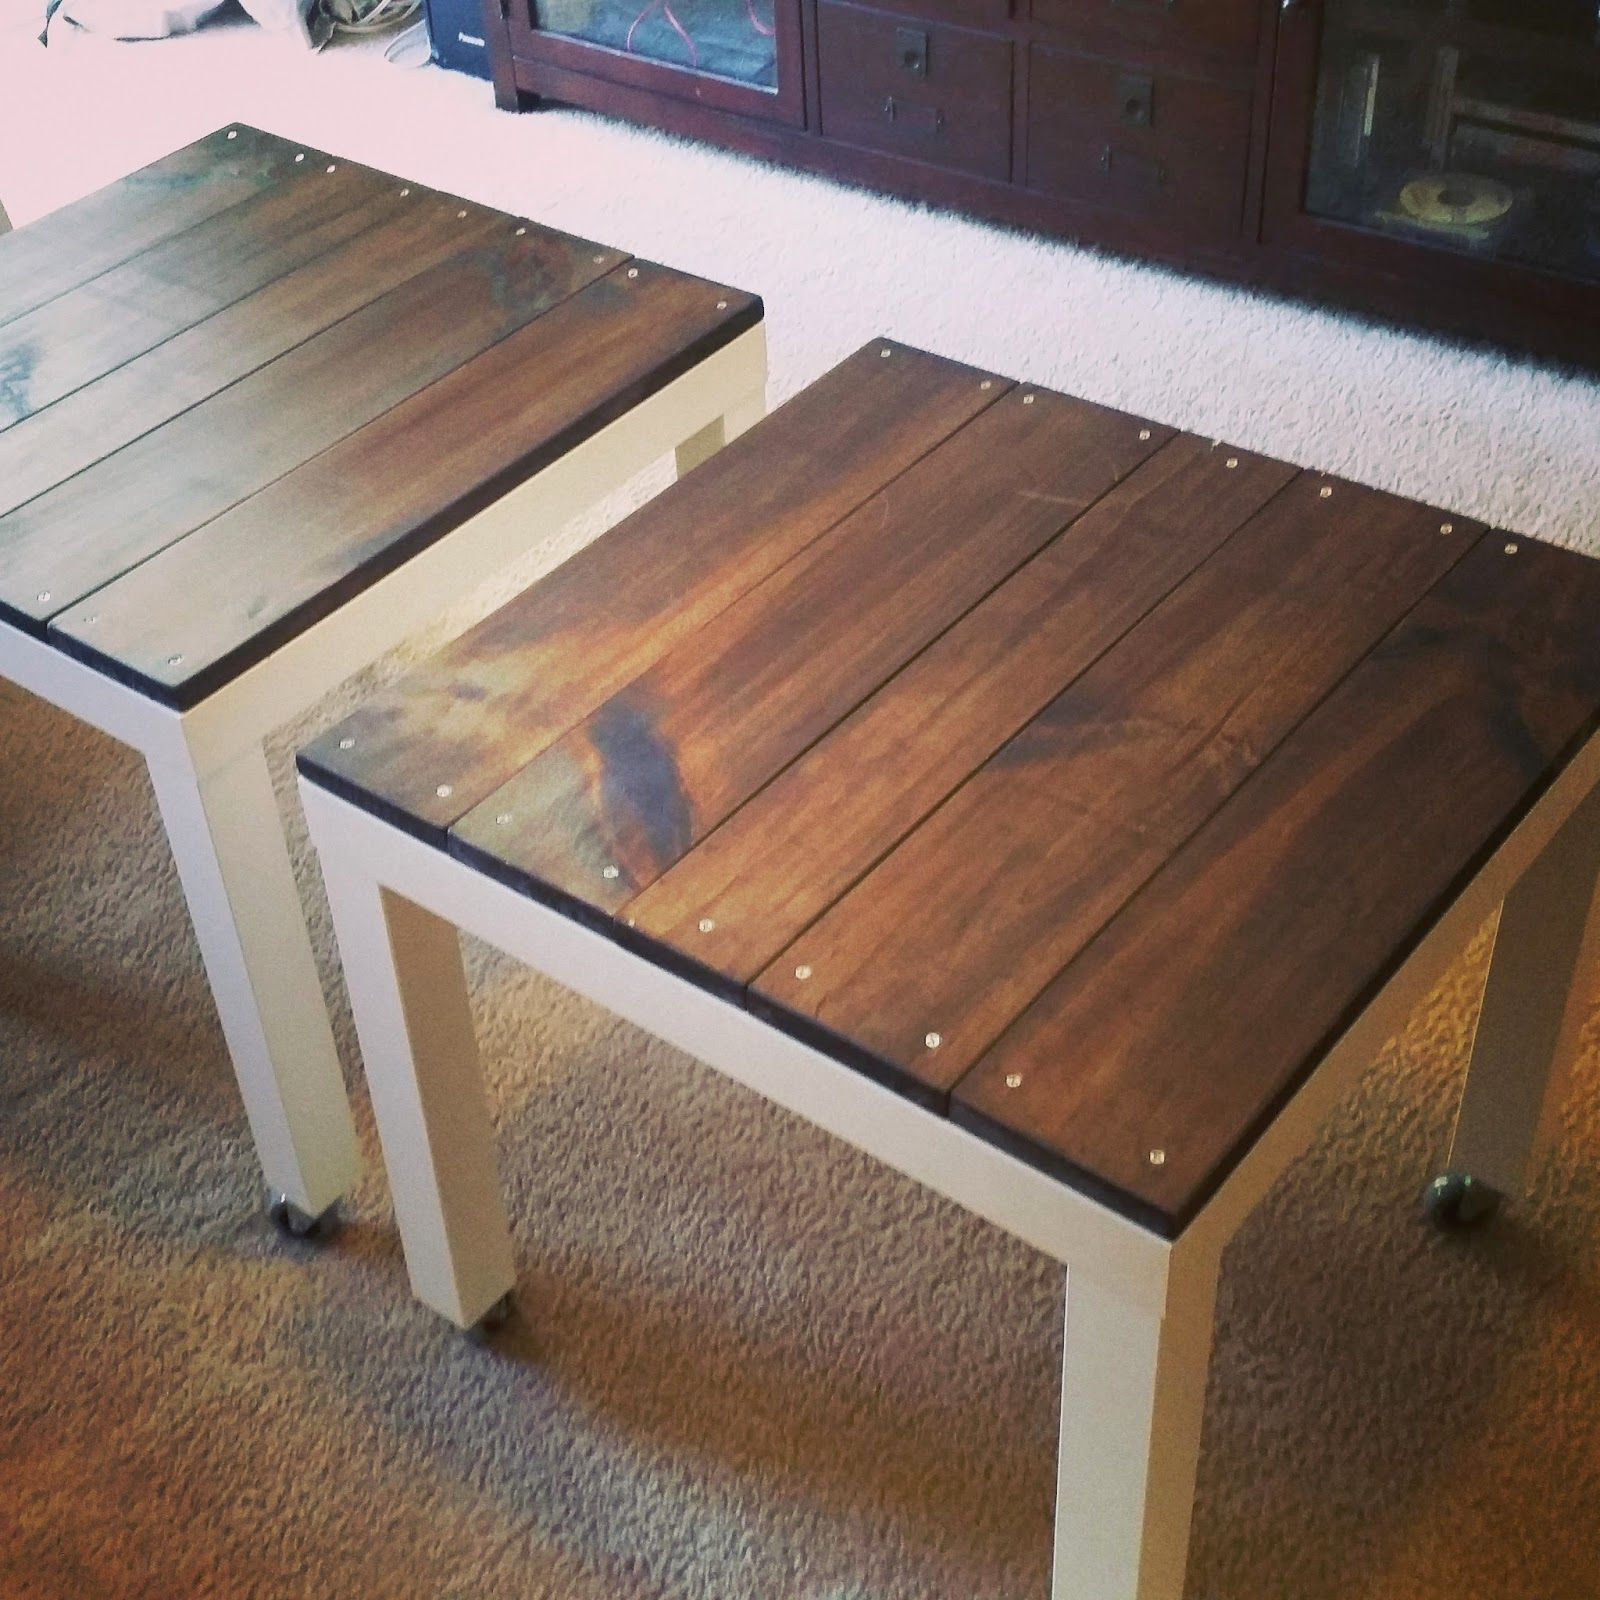 Ikea Lack Hack - add a weathered, industrial look to your ...